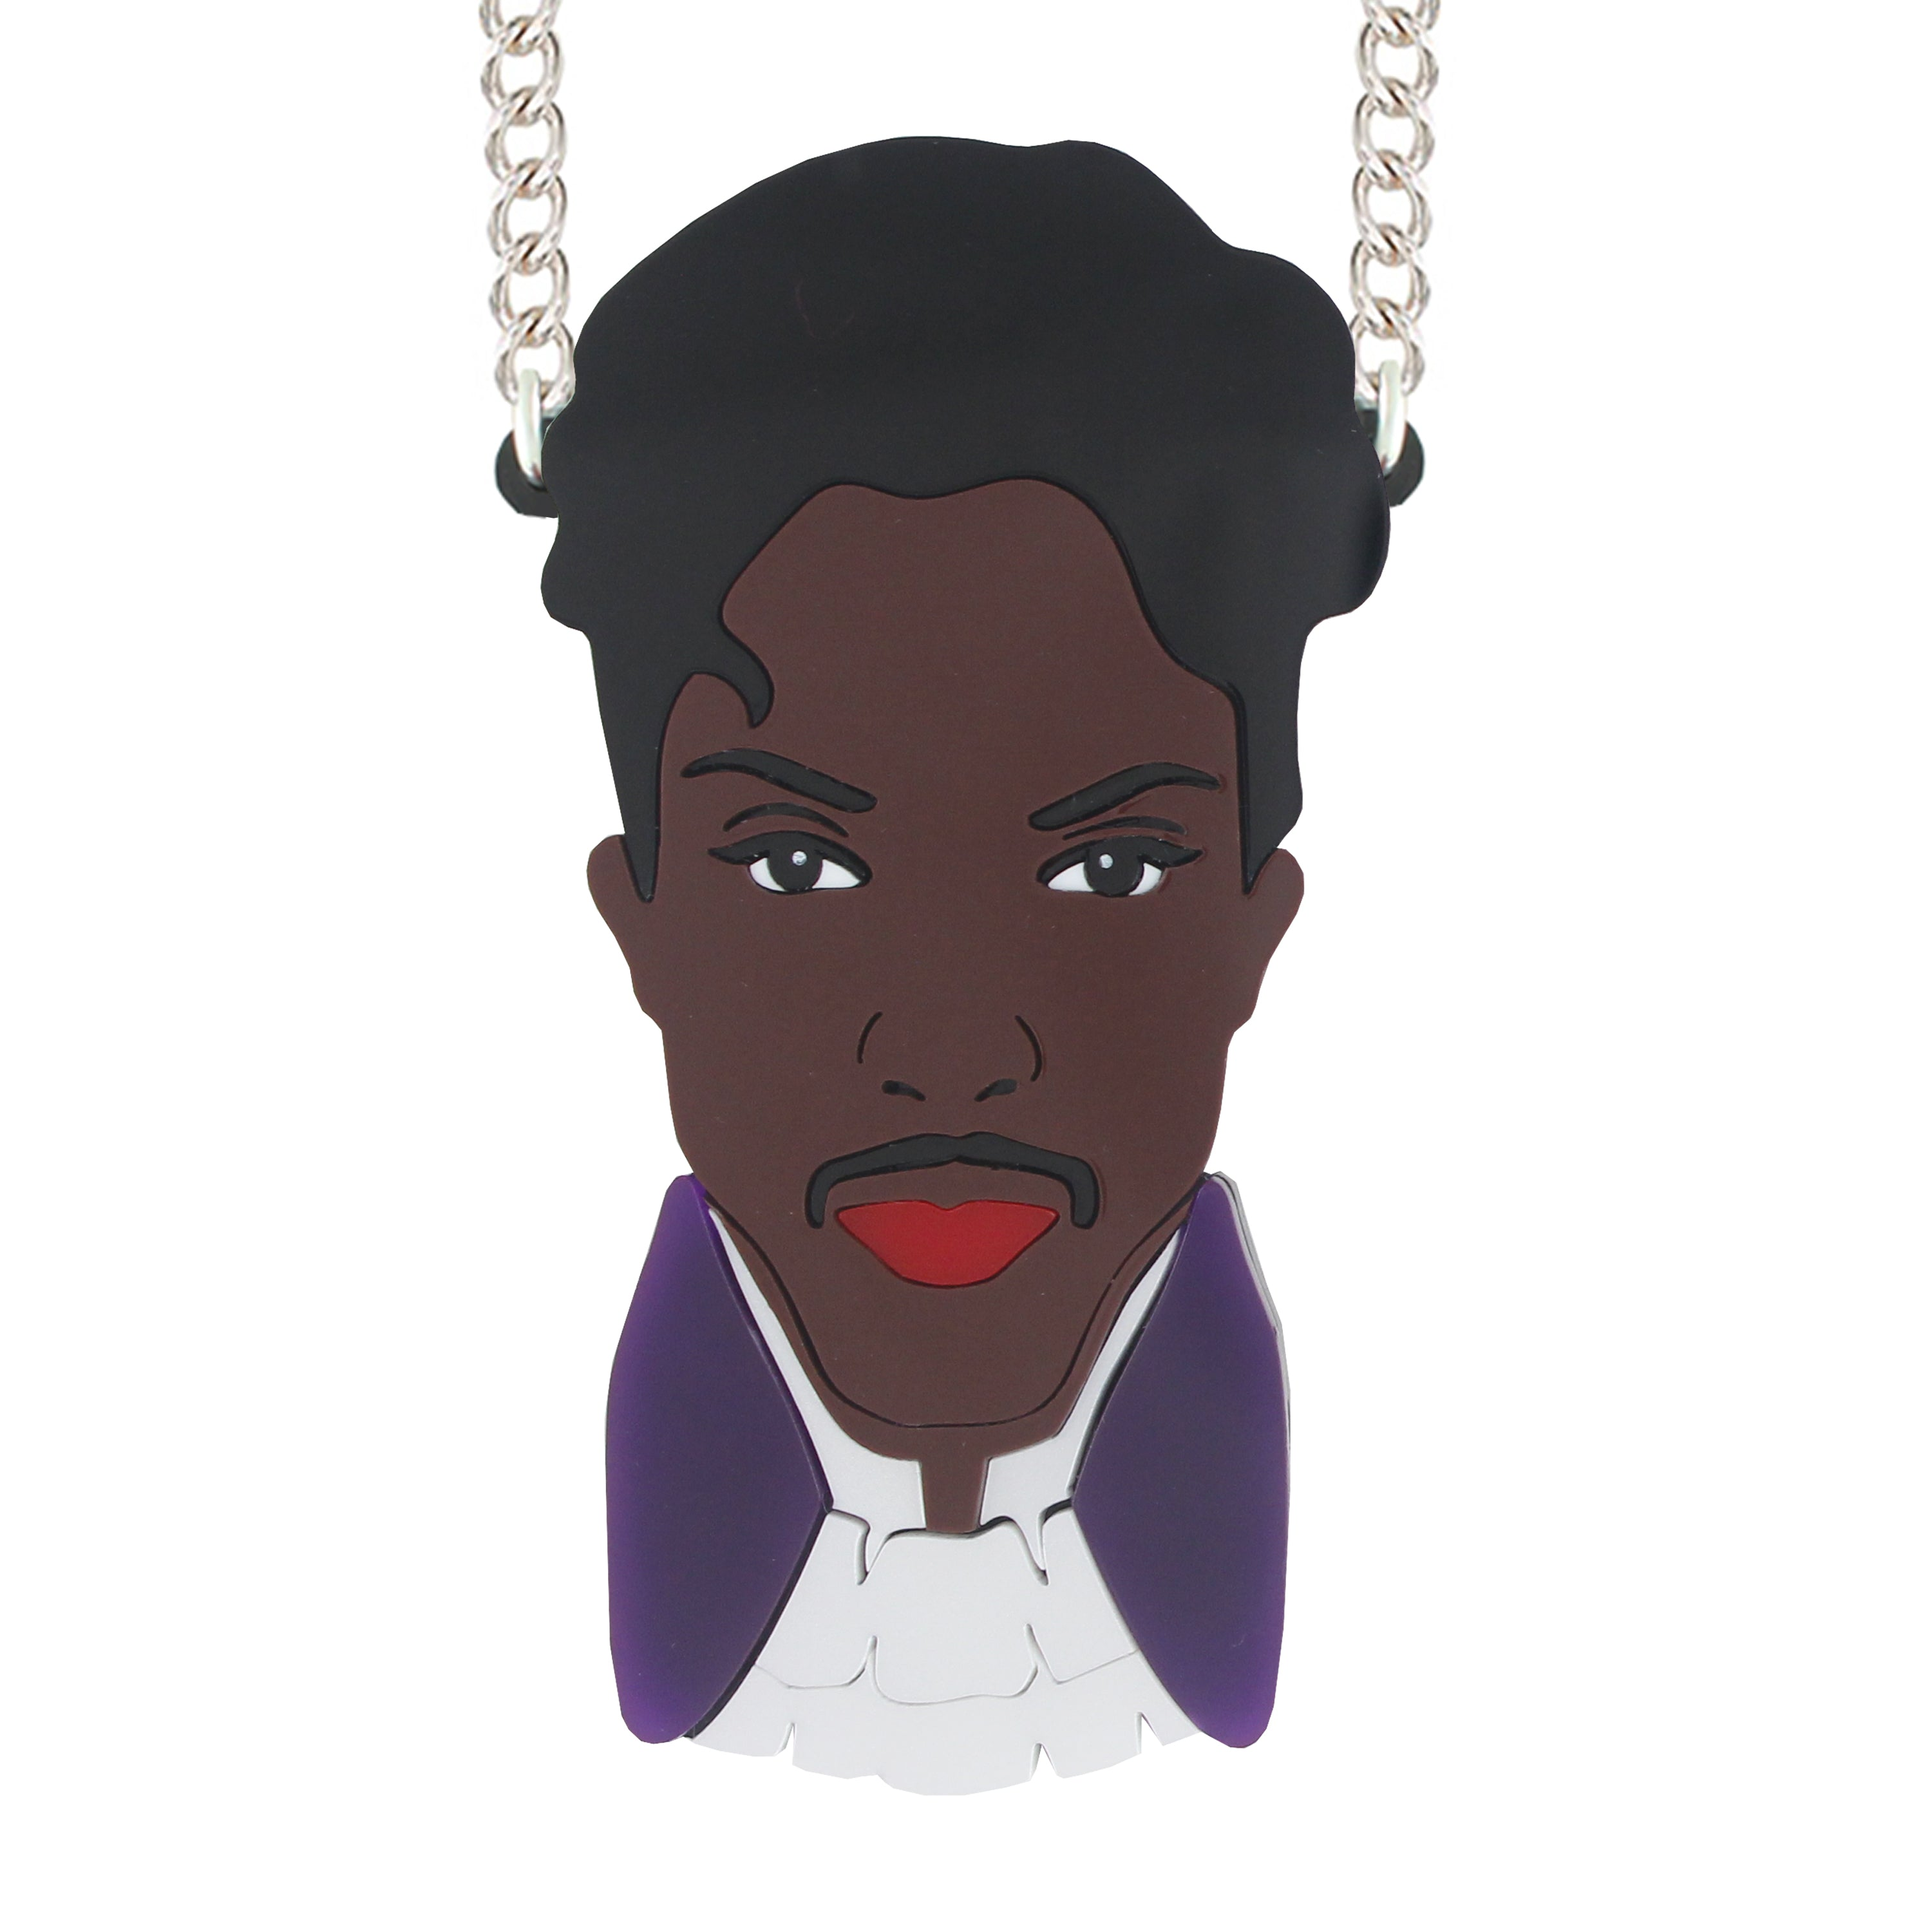 NEW! Prince necklace